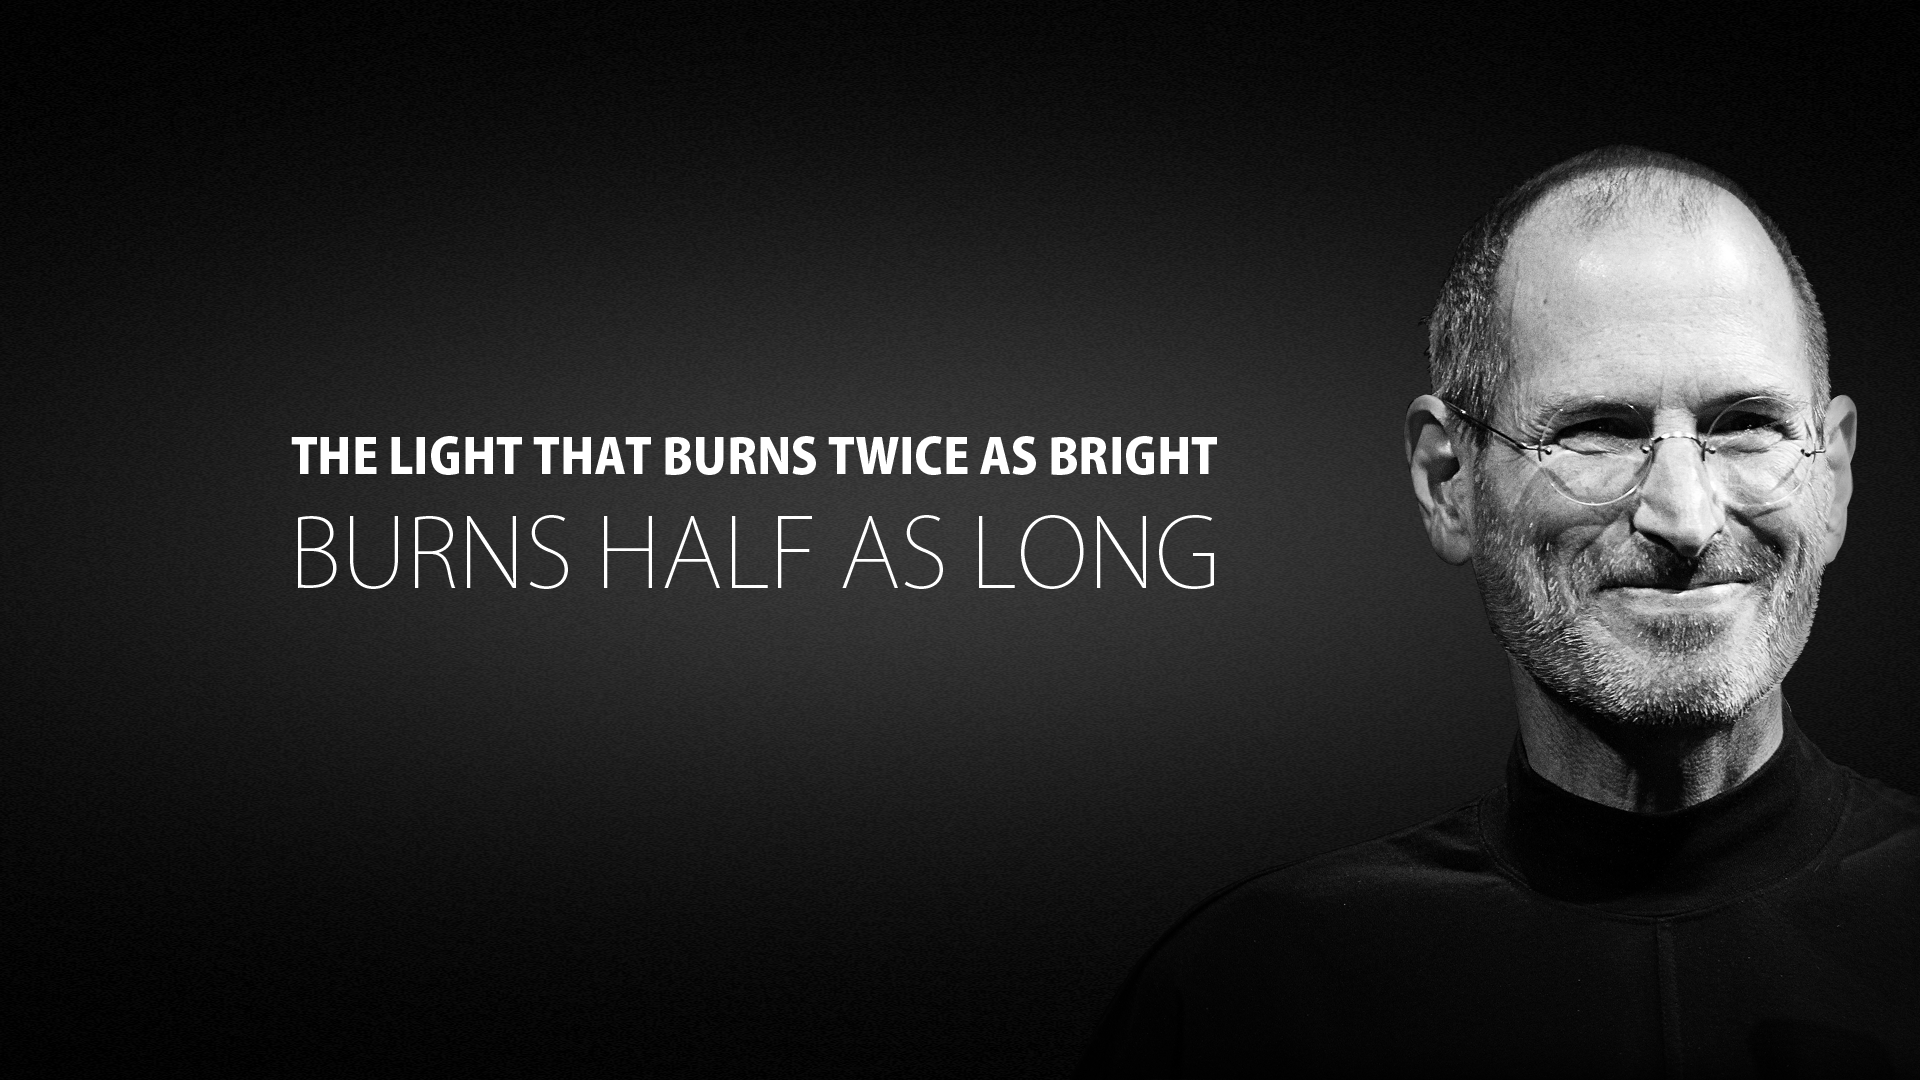 Download Steve Jobs Quotes HD Wallpapers Gallery